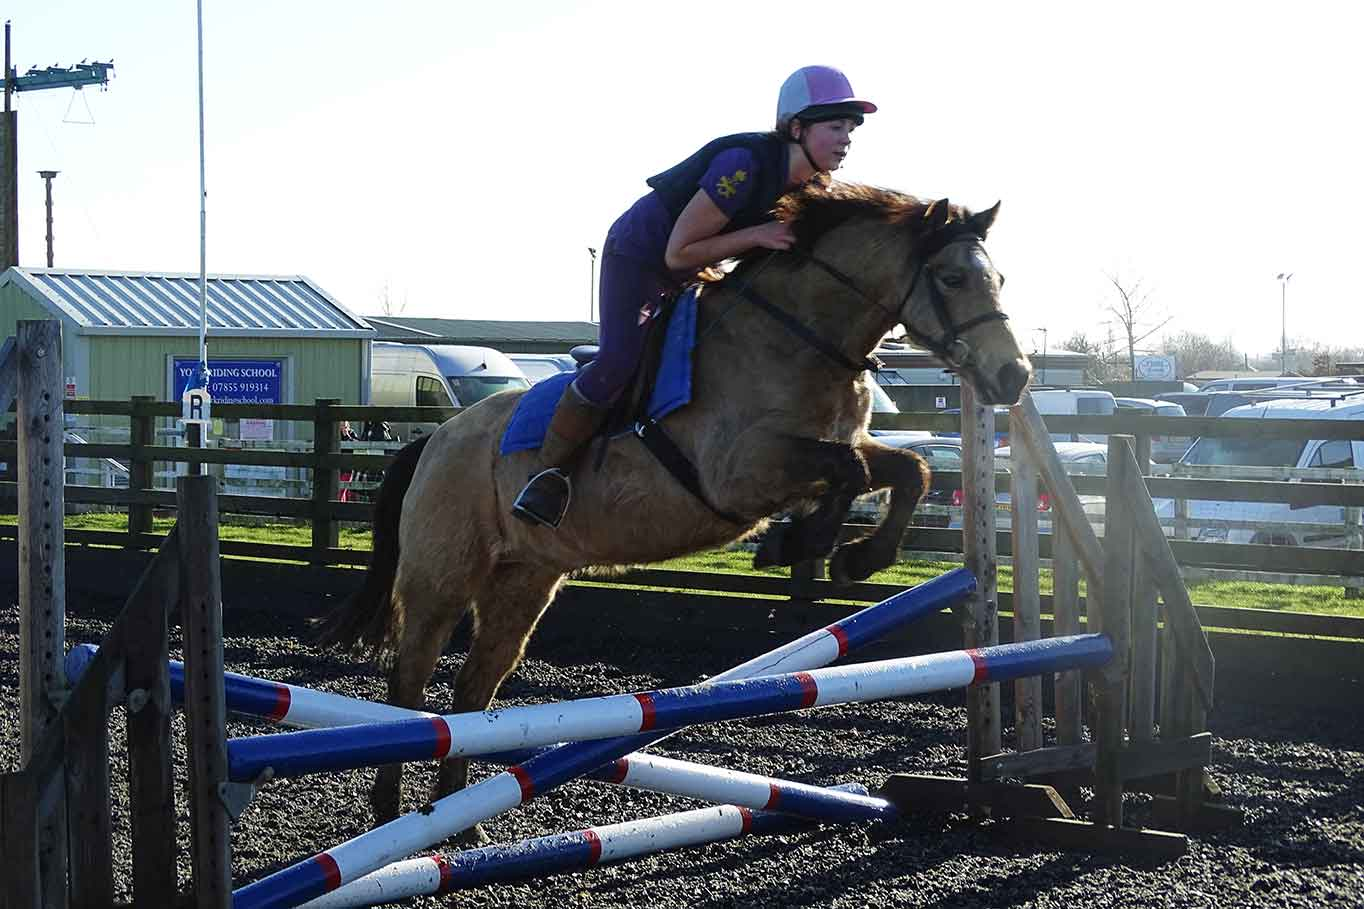 horse-jumping-clinic-york-riding-school.jpg